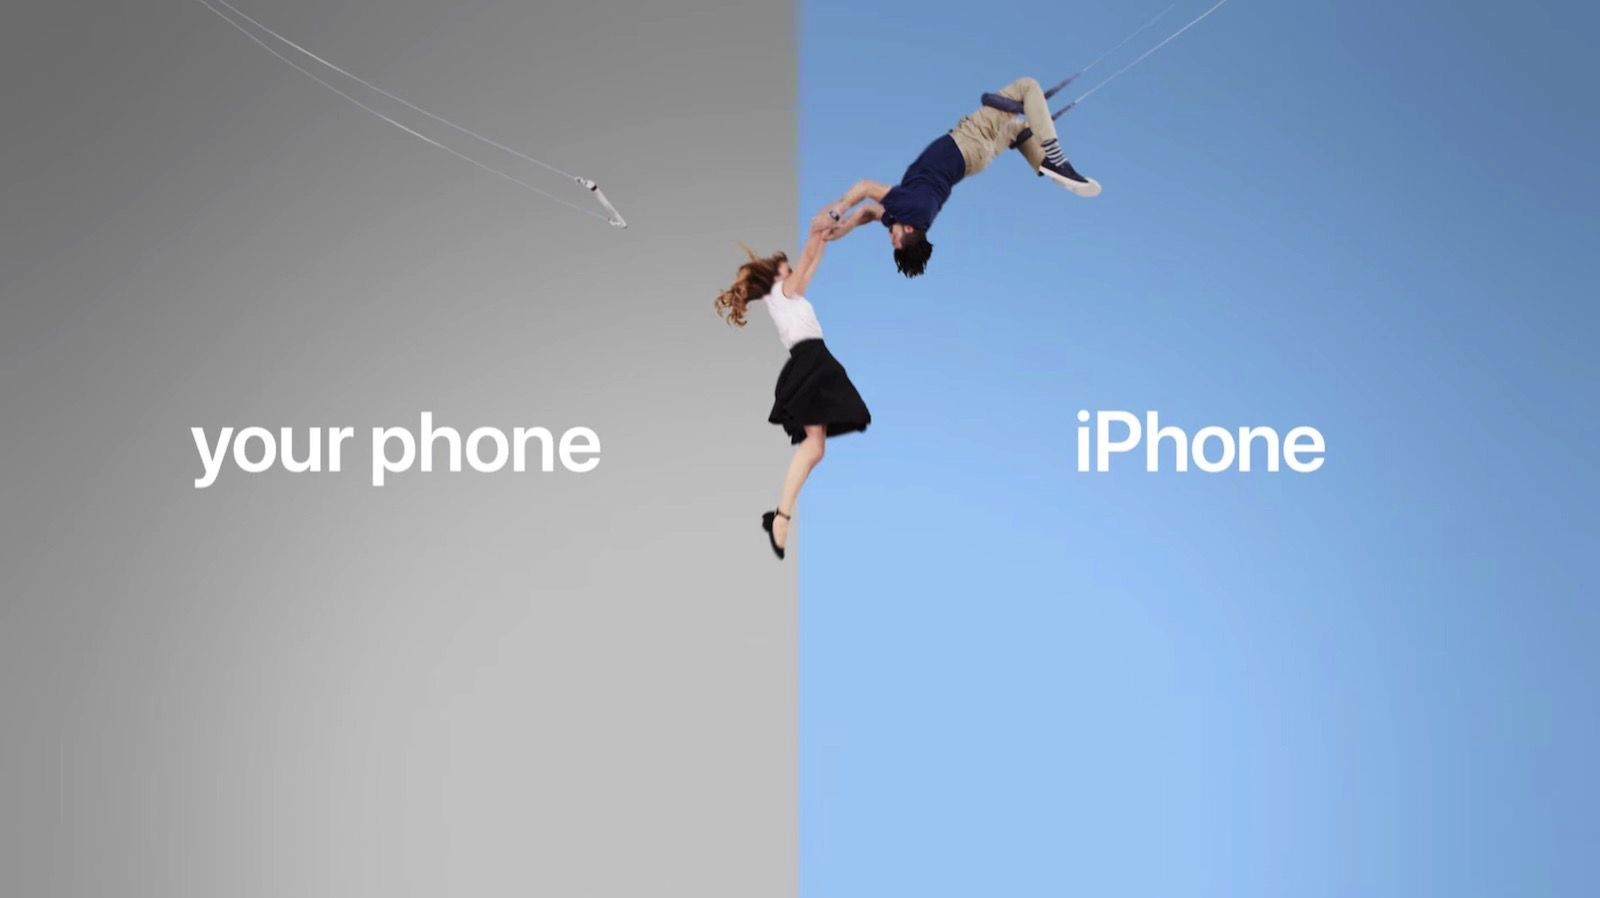 Better-Support-iPhone-Ad.jpg